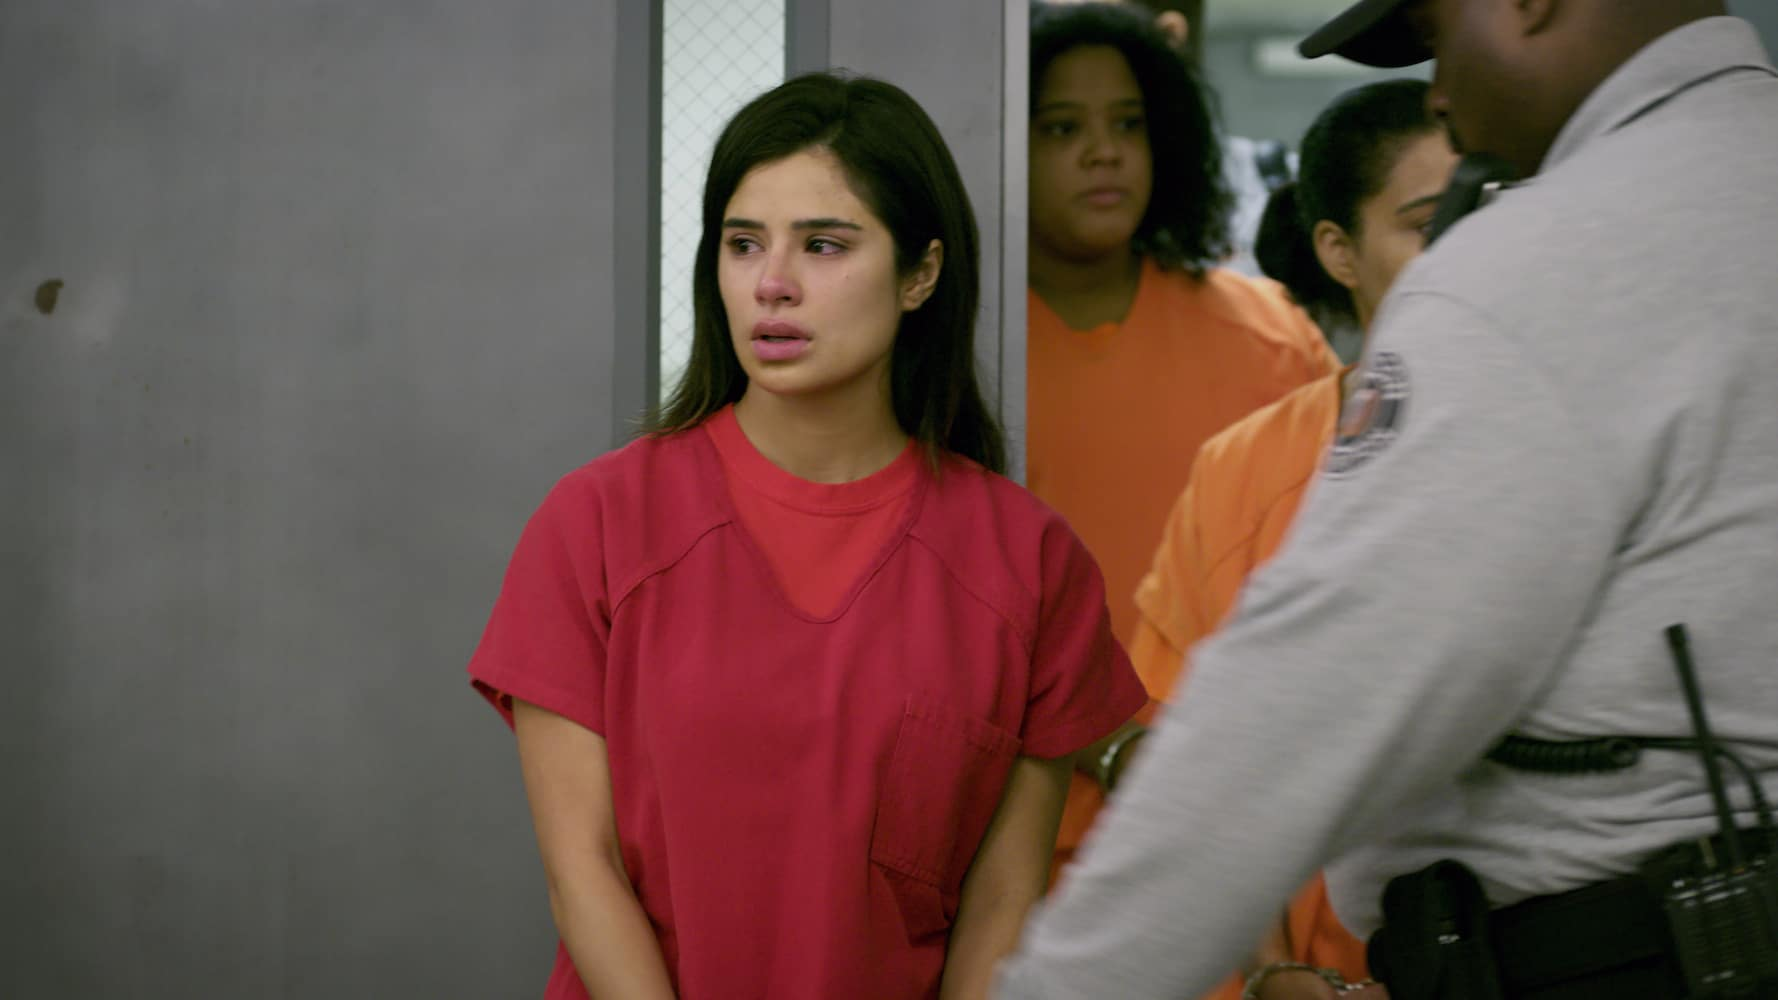 Diane Guerrero on Her Heartbreaking Immigration Storyline on Season 7 of 'Orange is the New Black'